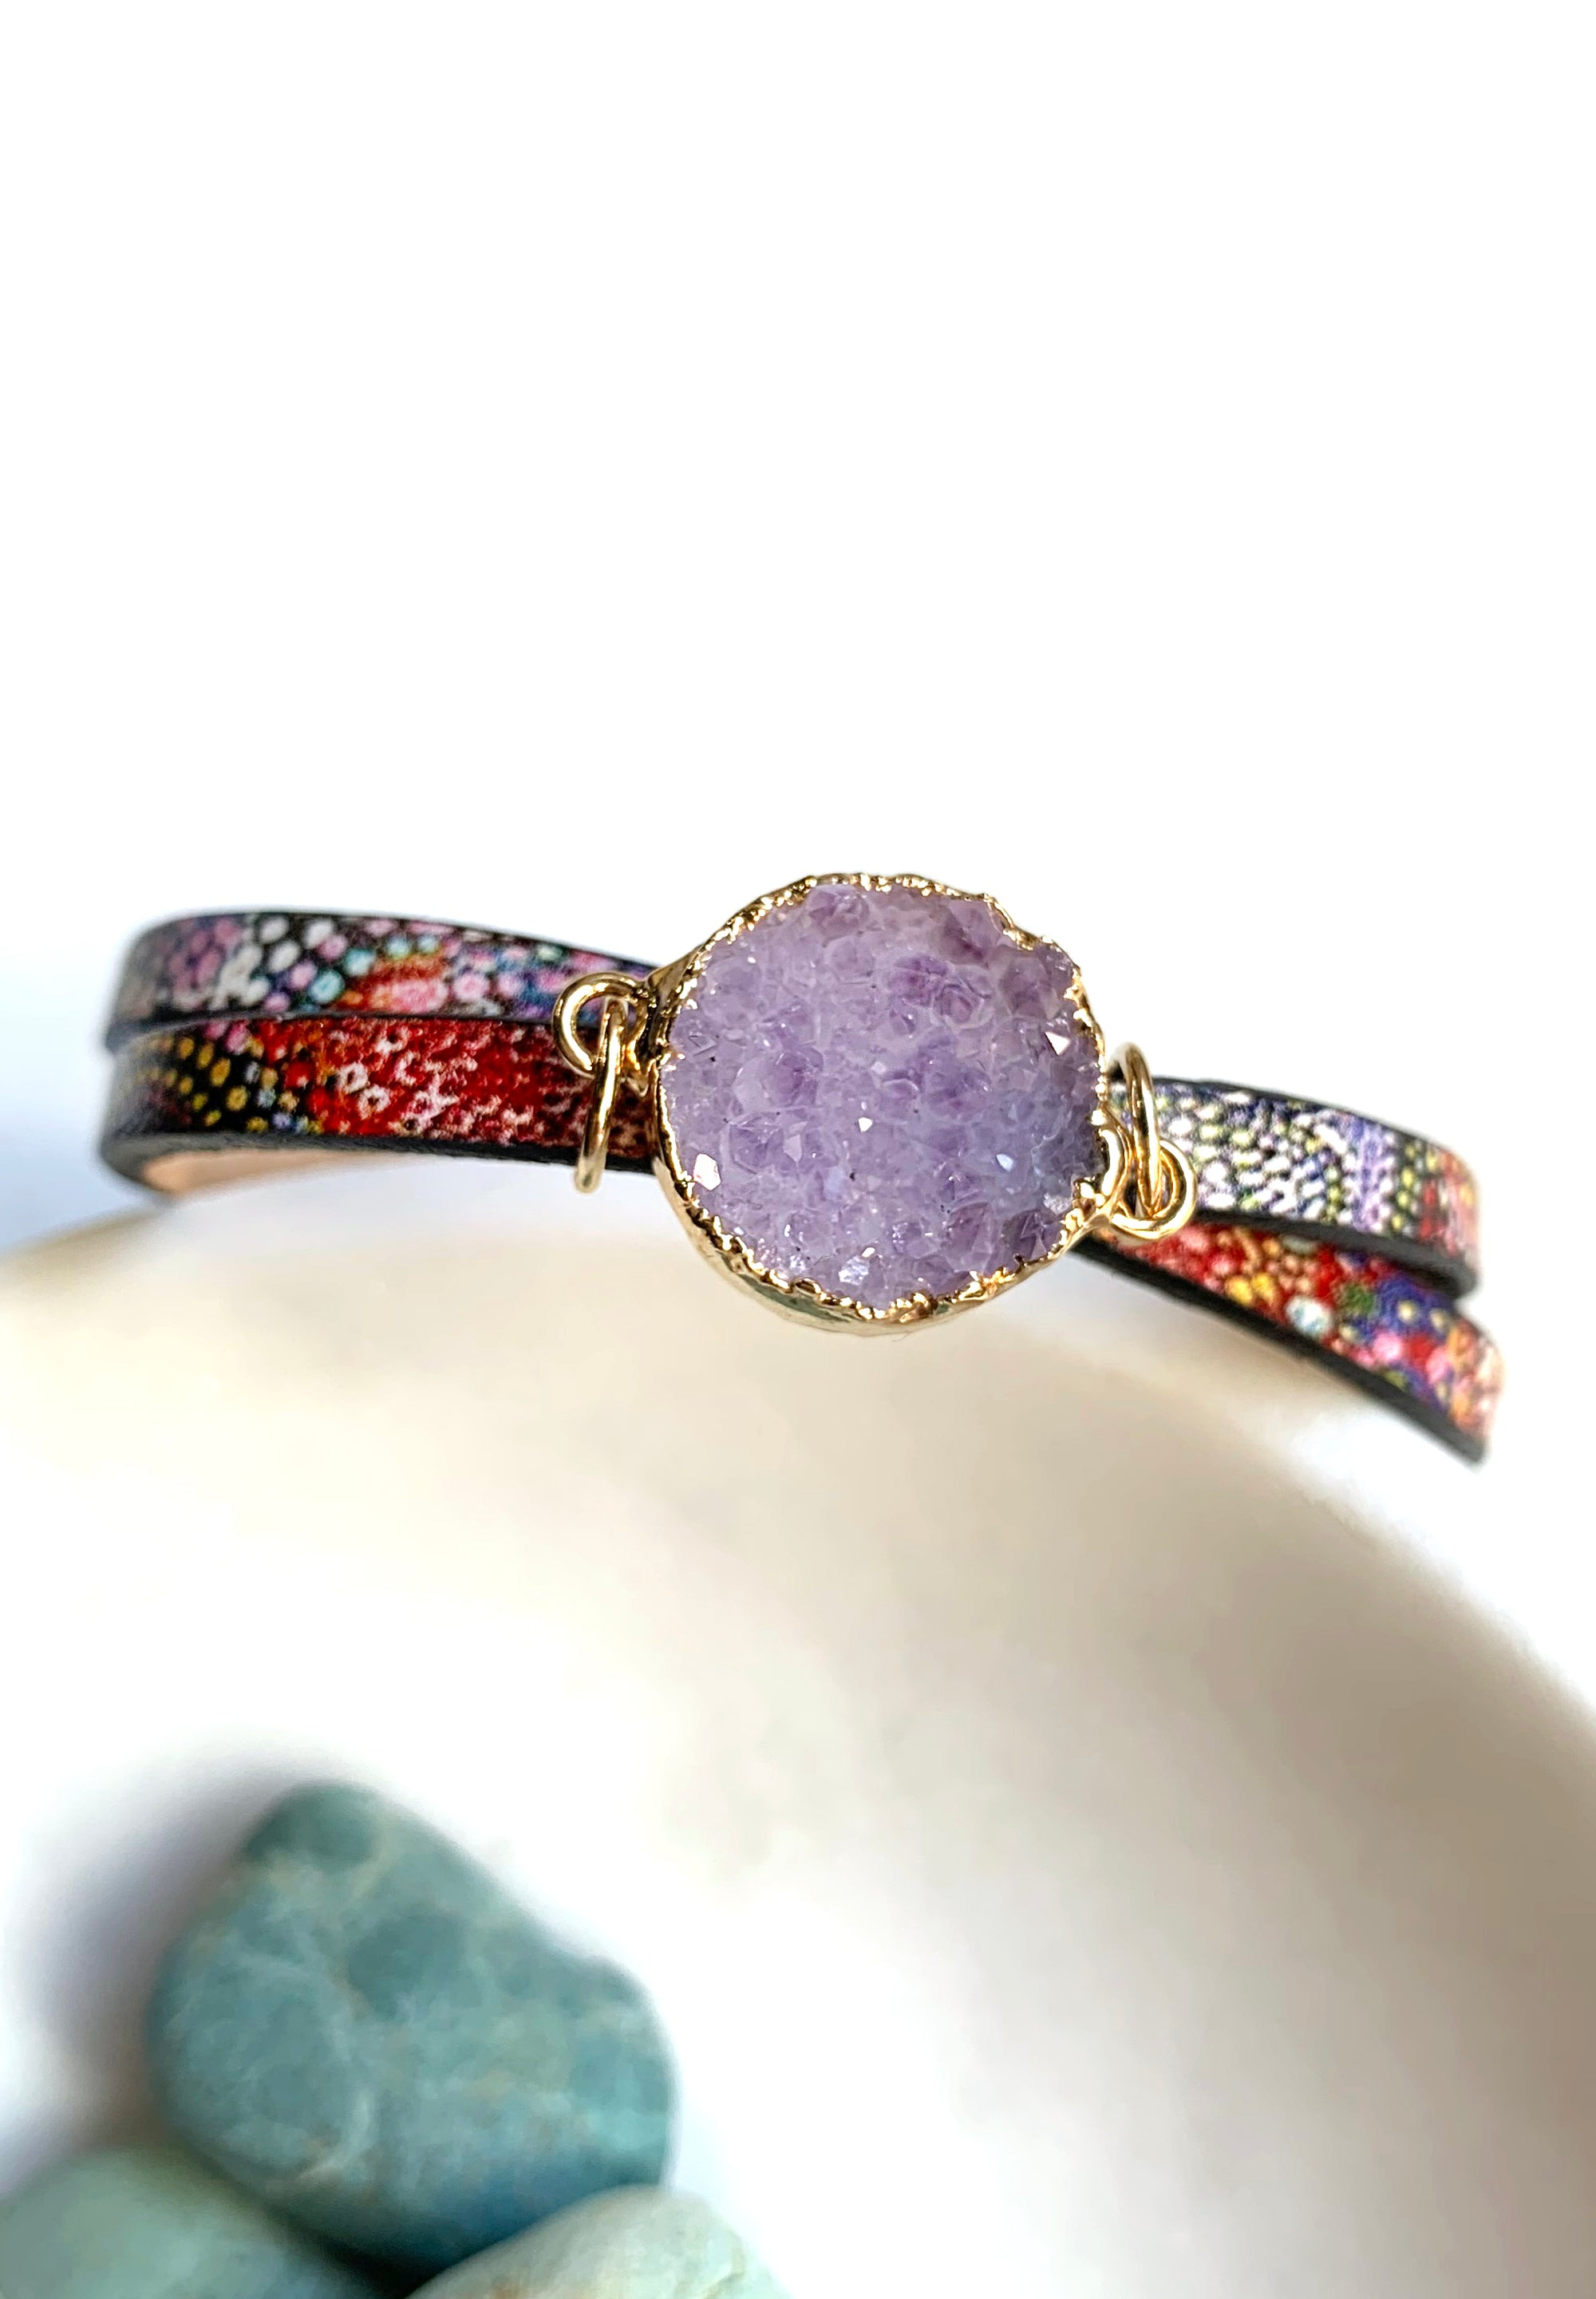 Millefiori Leather Druzy Bracelet